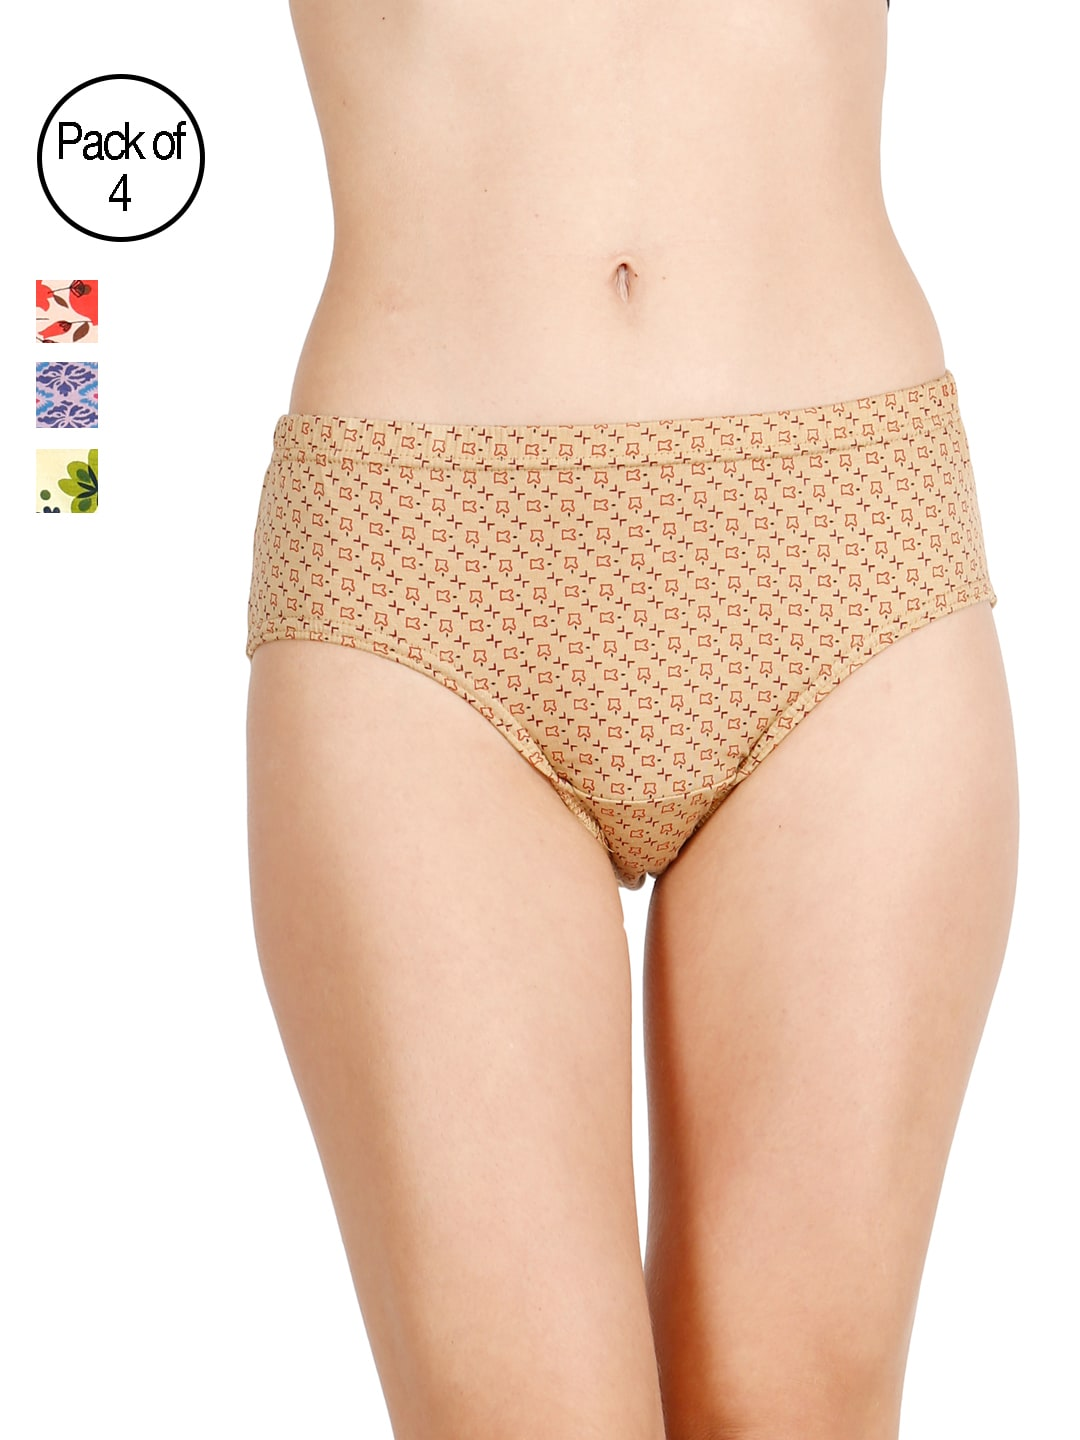 LUX Cozi for her Pack Of 4 Briefs LC4H-HIP102-ABCE image